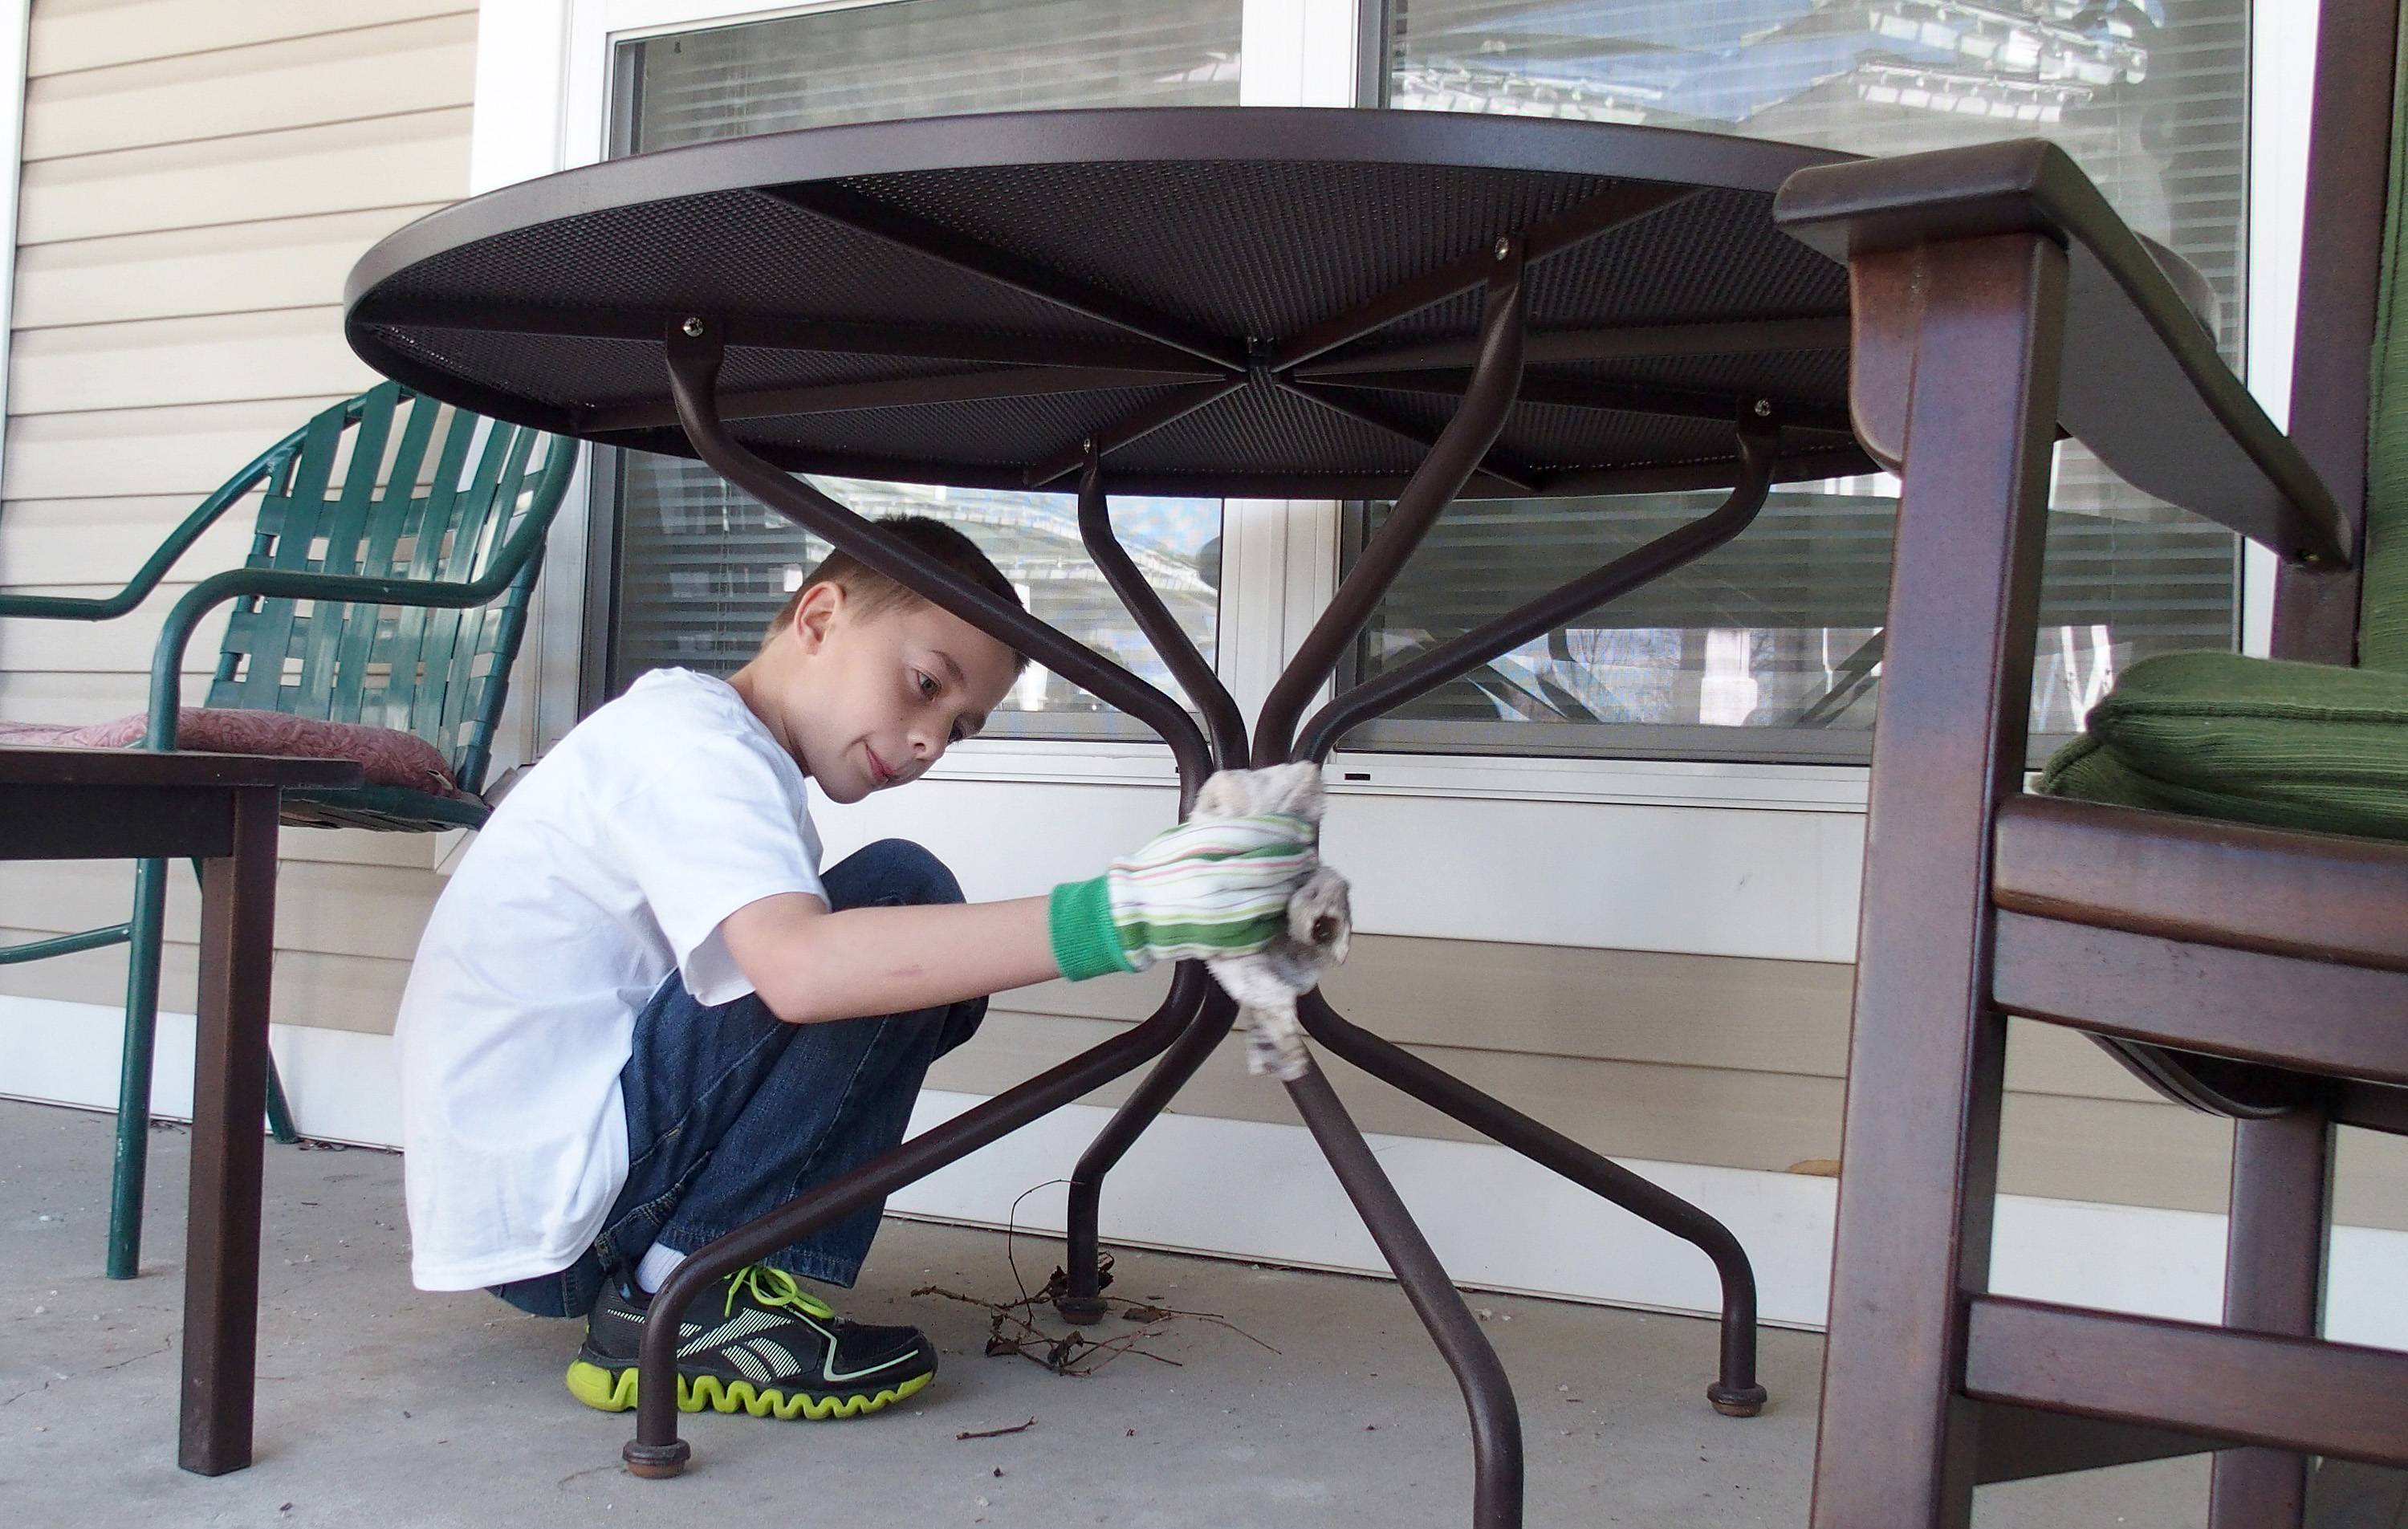 Kyle Prout, one of the students from St. James the Apostle School in Glen Ellyn, helps clean up outside tables and chairs at Sunrise Senior Living Center and Brighton Gardens.